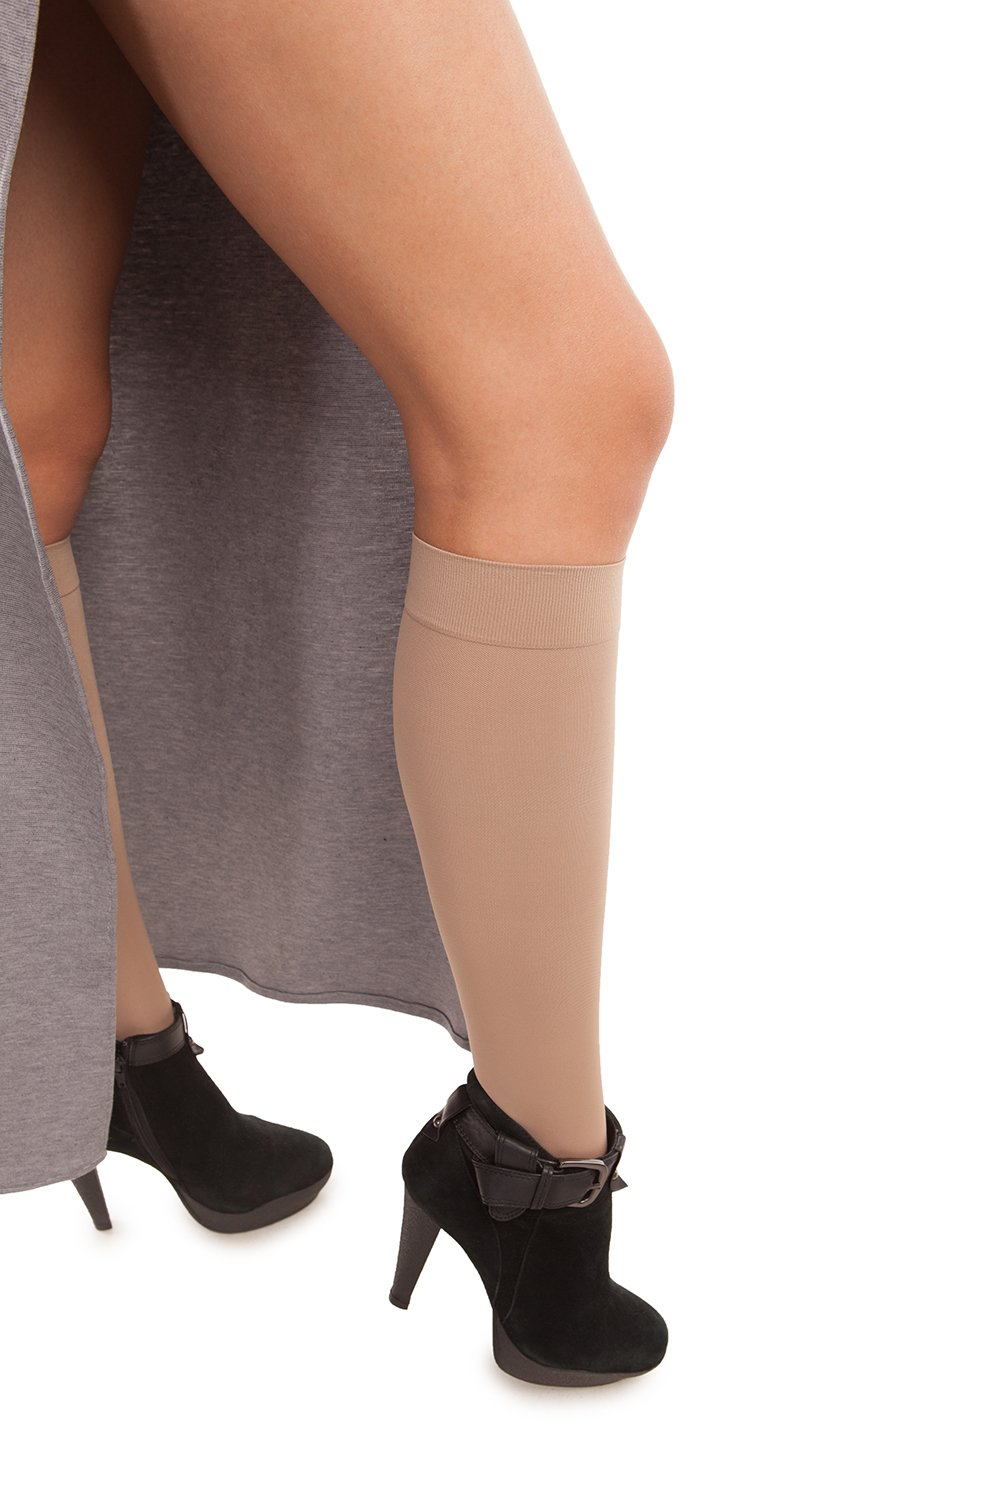 Microfiber Knee Highs - Strong Compression - Gabrialla